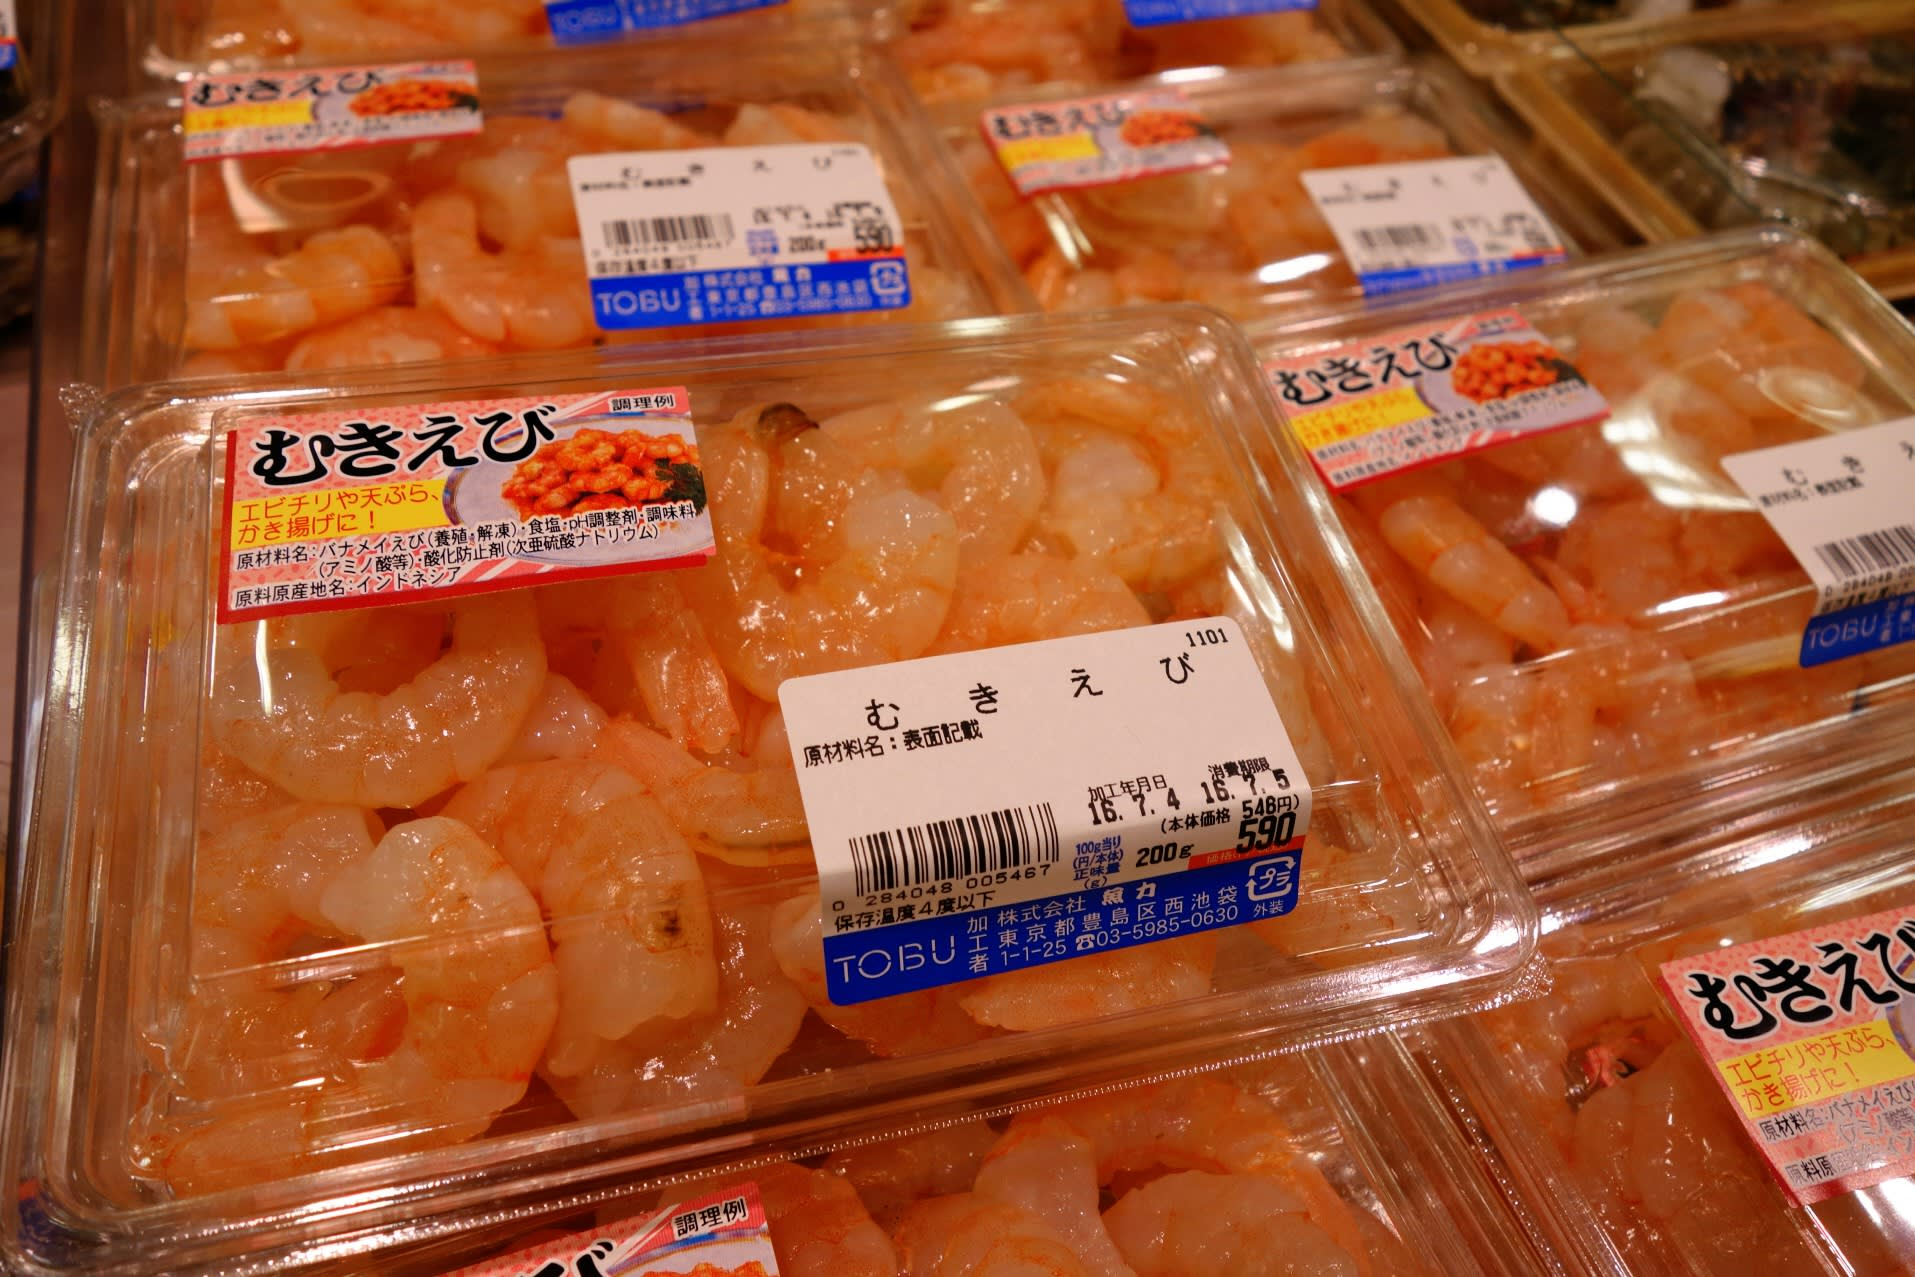 Supply, demand pressures driving up Japan's food import